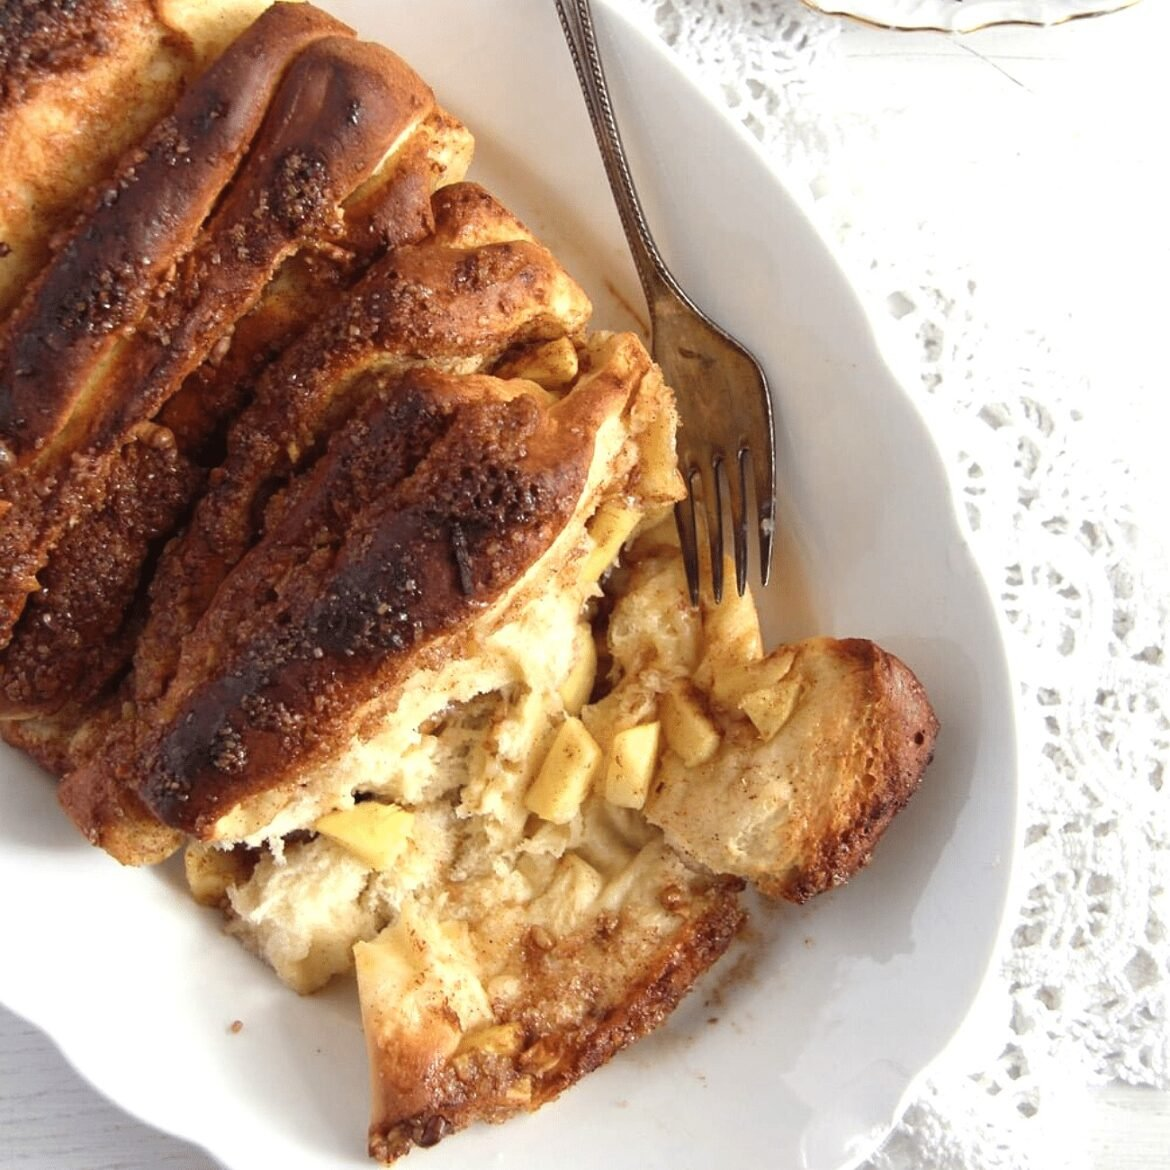 fluffy yeast apple bread with apple pieces inside